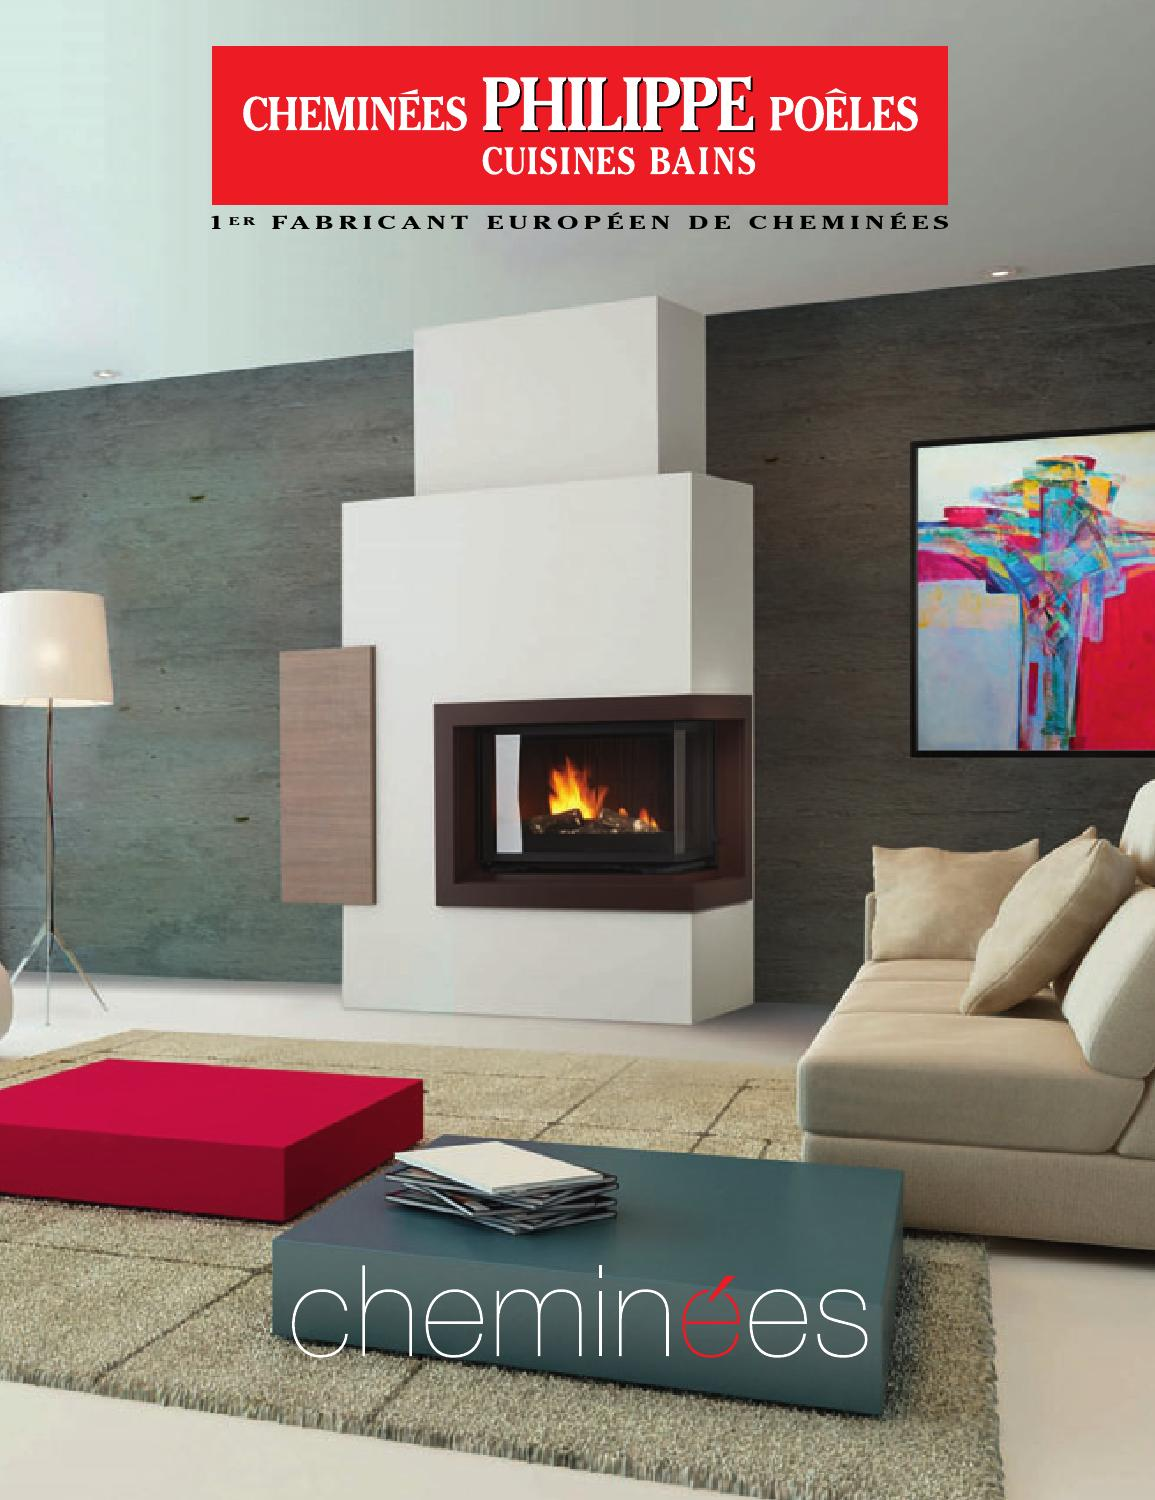 Cheminees Philippe 1001 Etanche Cheminees Philippe 2014 2015 By Idea Studio Caminetti Issuu